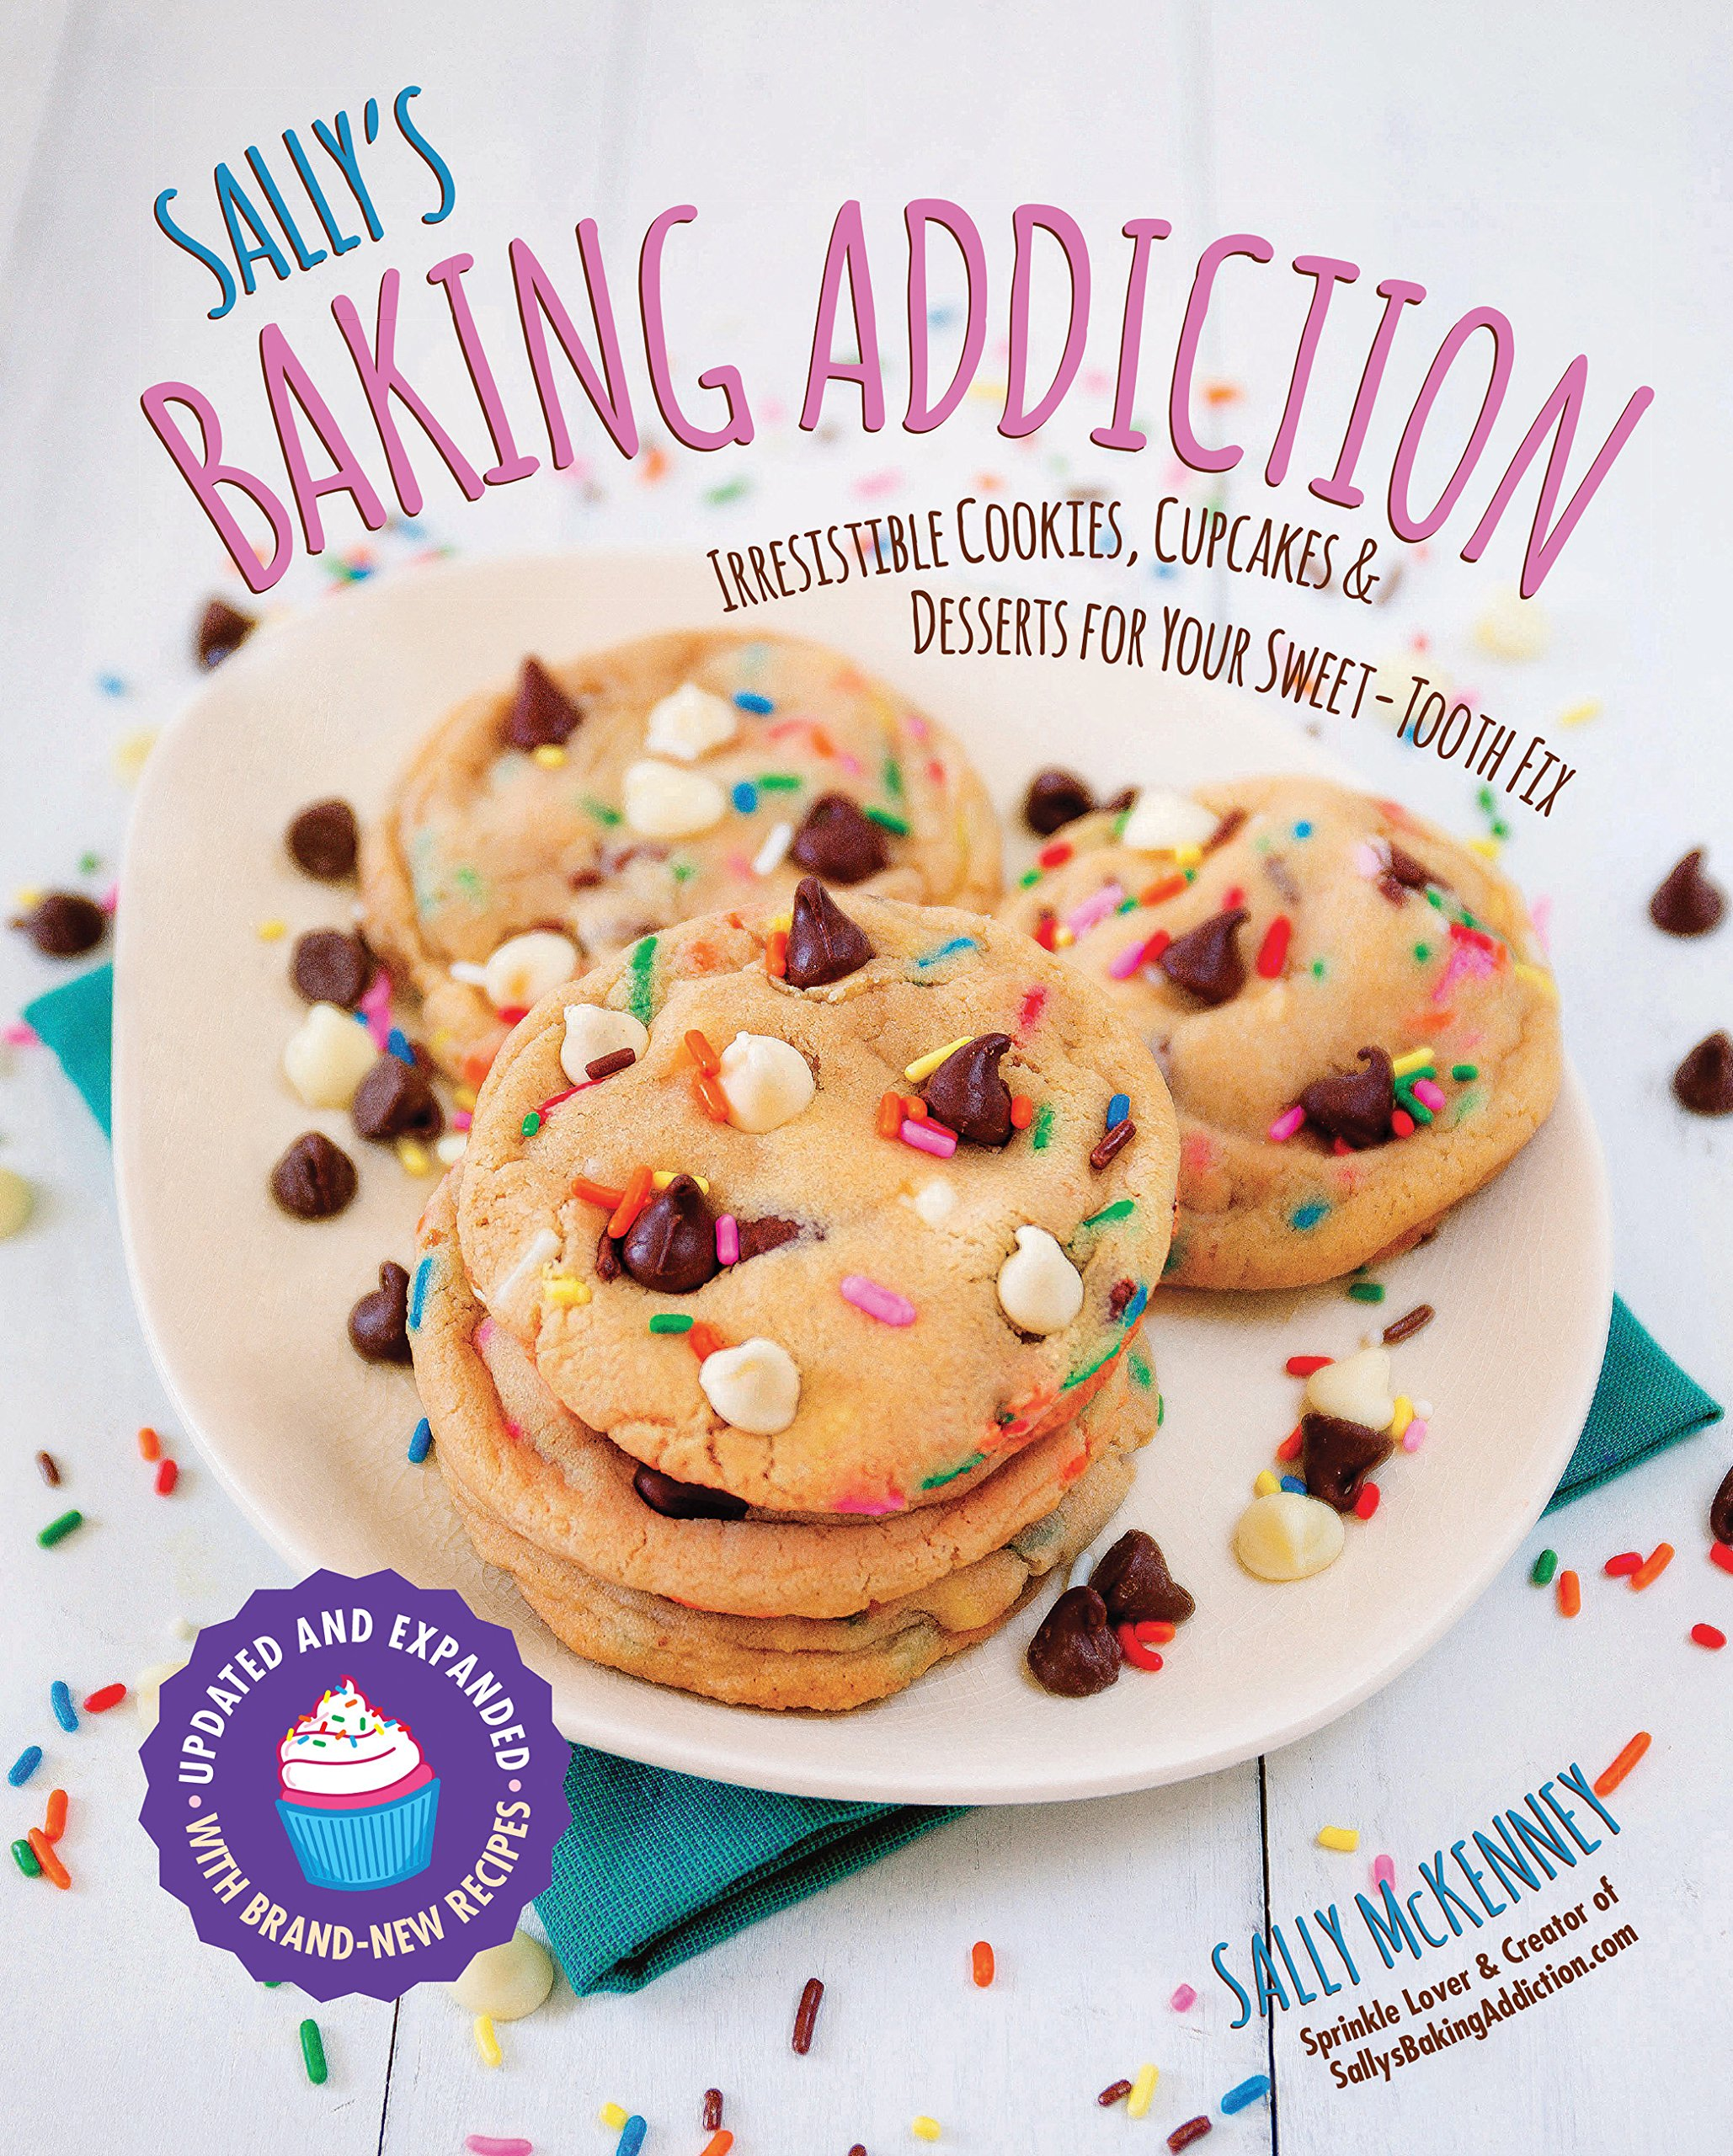 Sally's Baking Addiction: Irresistible Cookies, Cupcakes, and Desserts for Your Sweet-Tooth Fix by Race Point Publishing